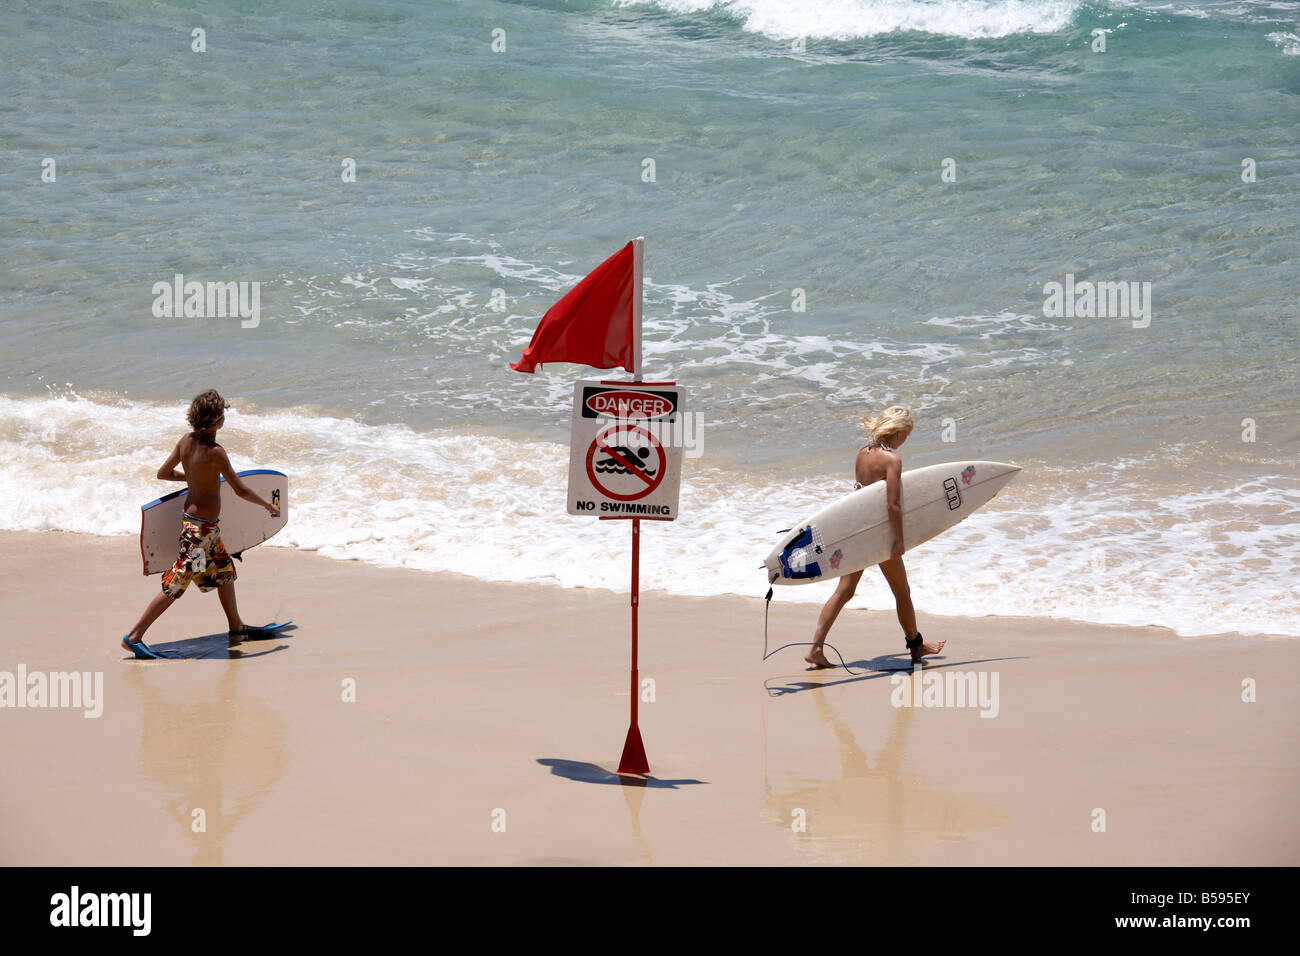 people carrying surf boards past danger no swimming sign